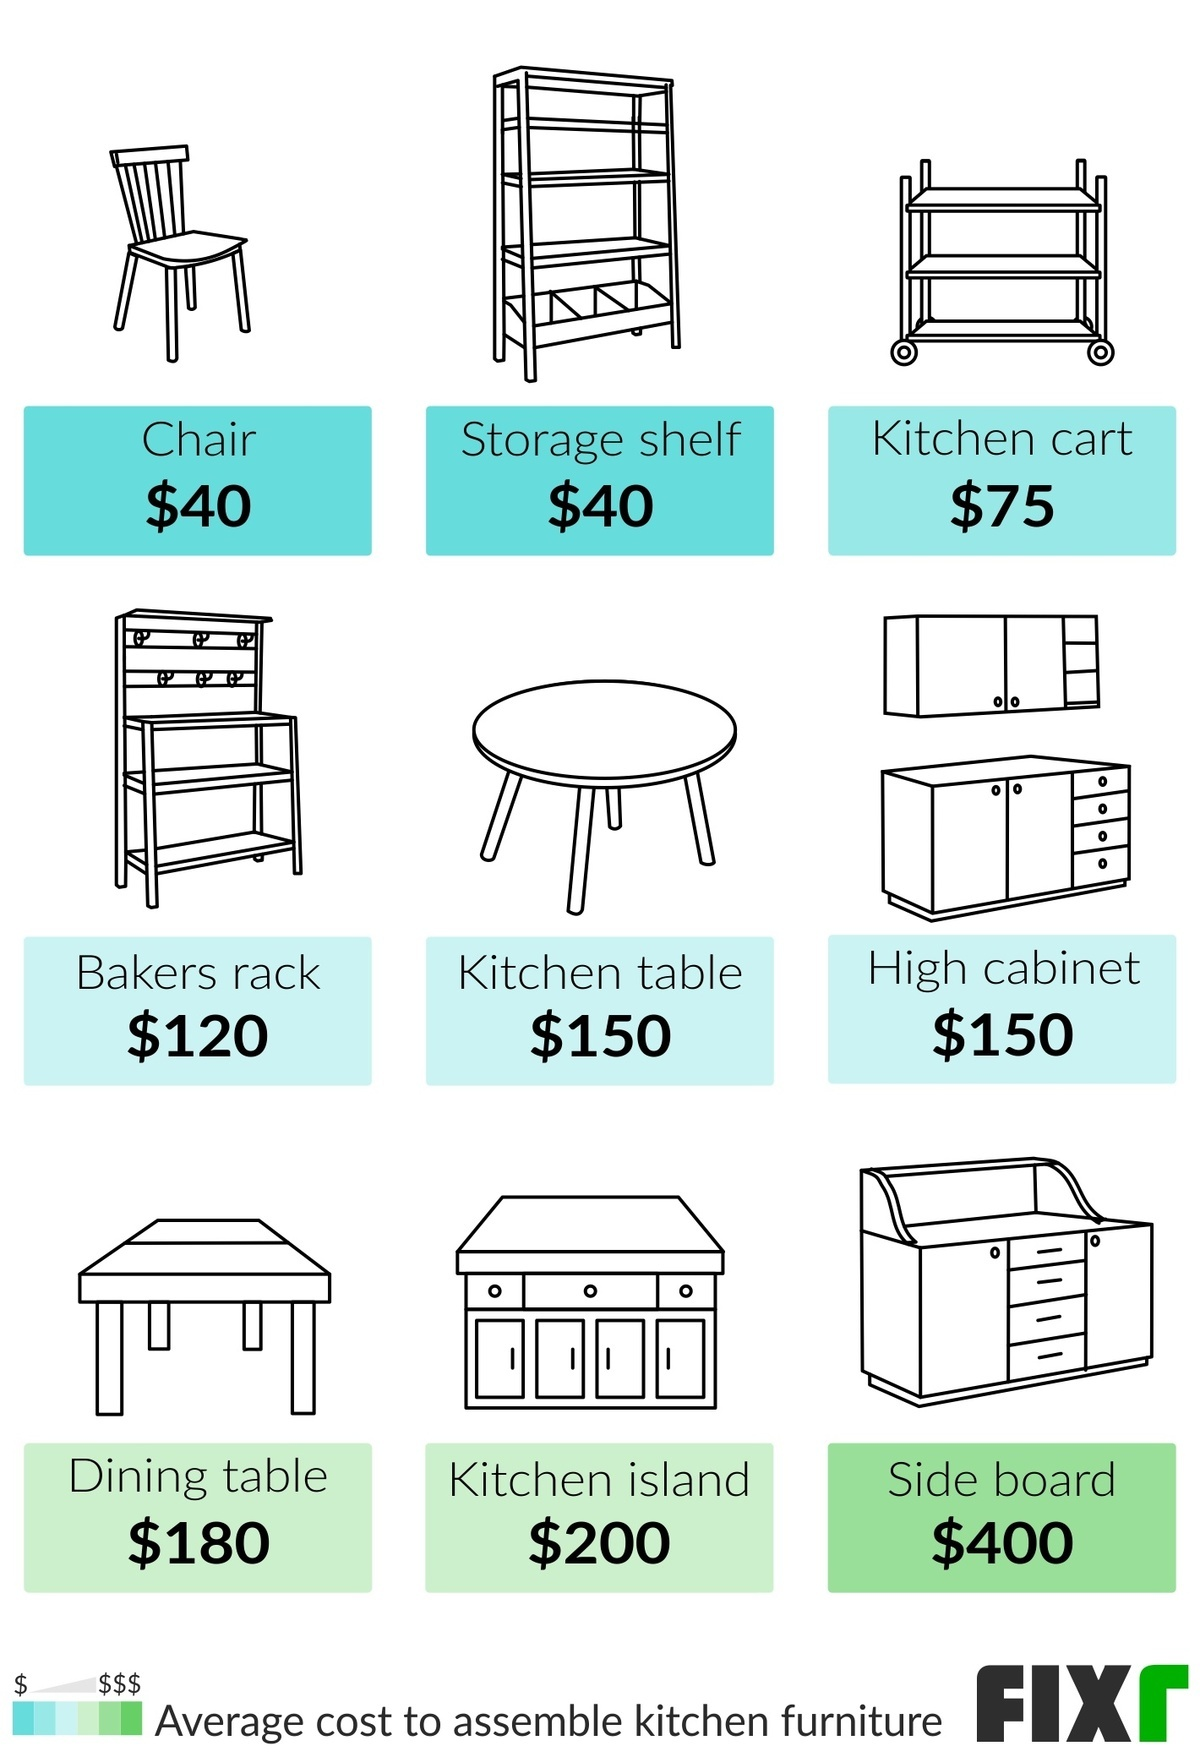 2021 Furniture Assembly Cost Hourly Rate For Furniture Assembly